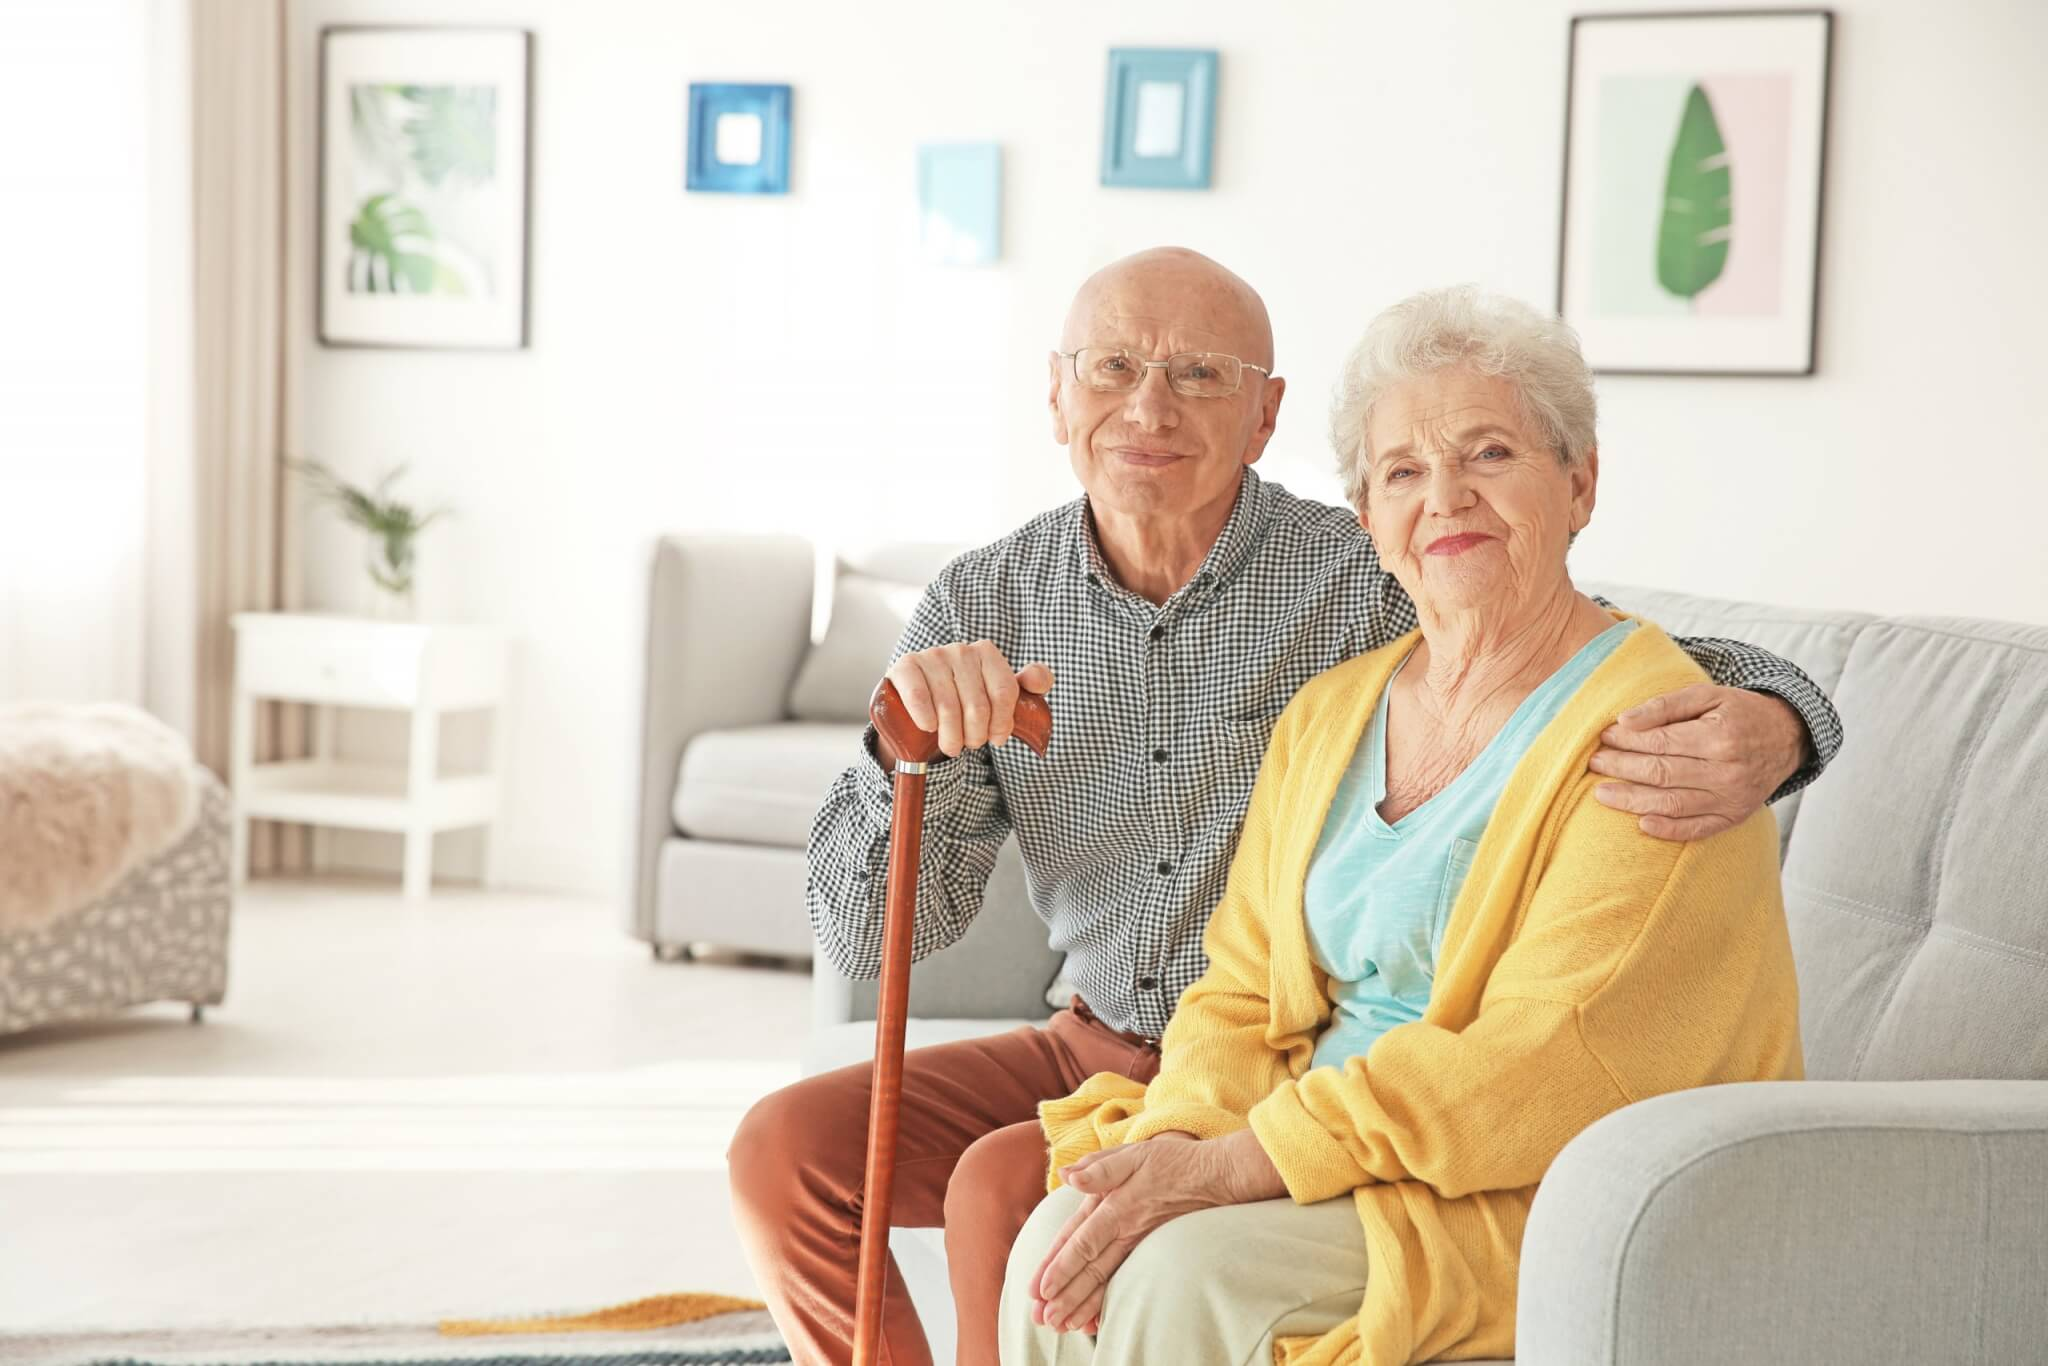 Senior citizens enjoying their home with home warranty protection